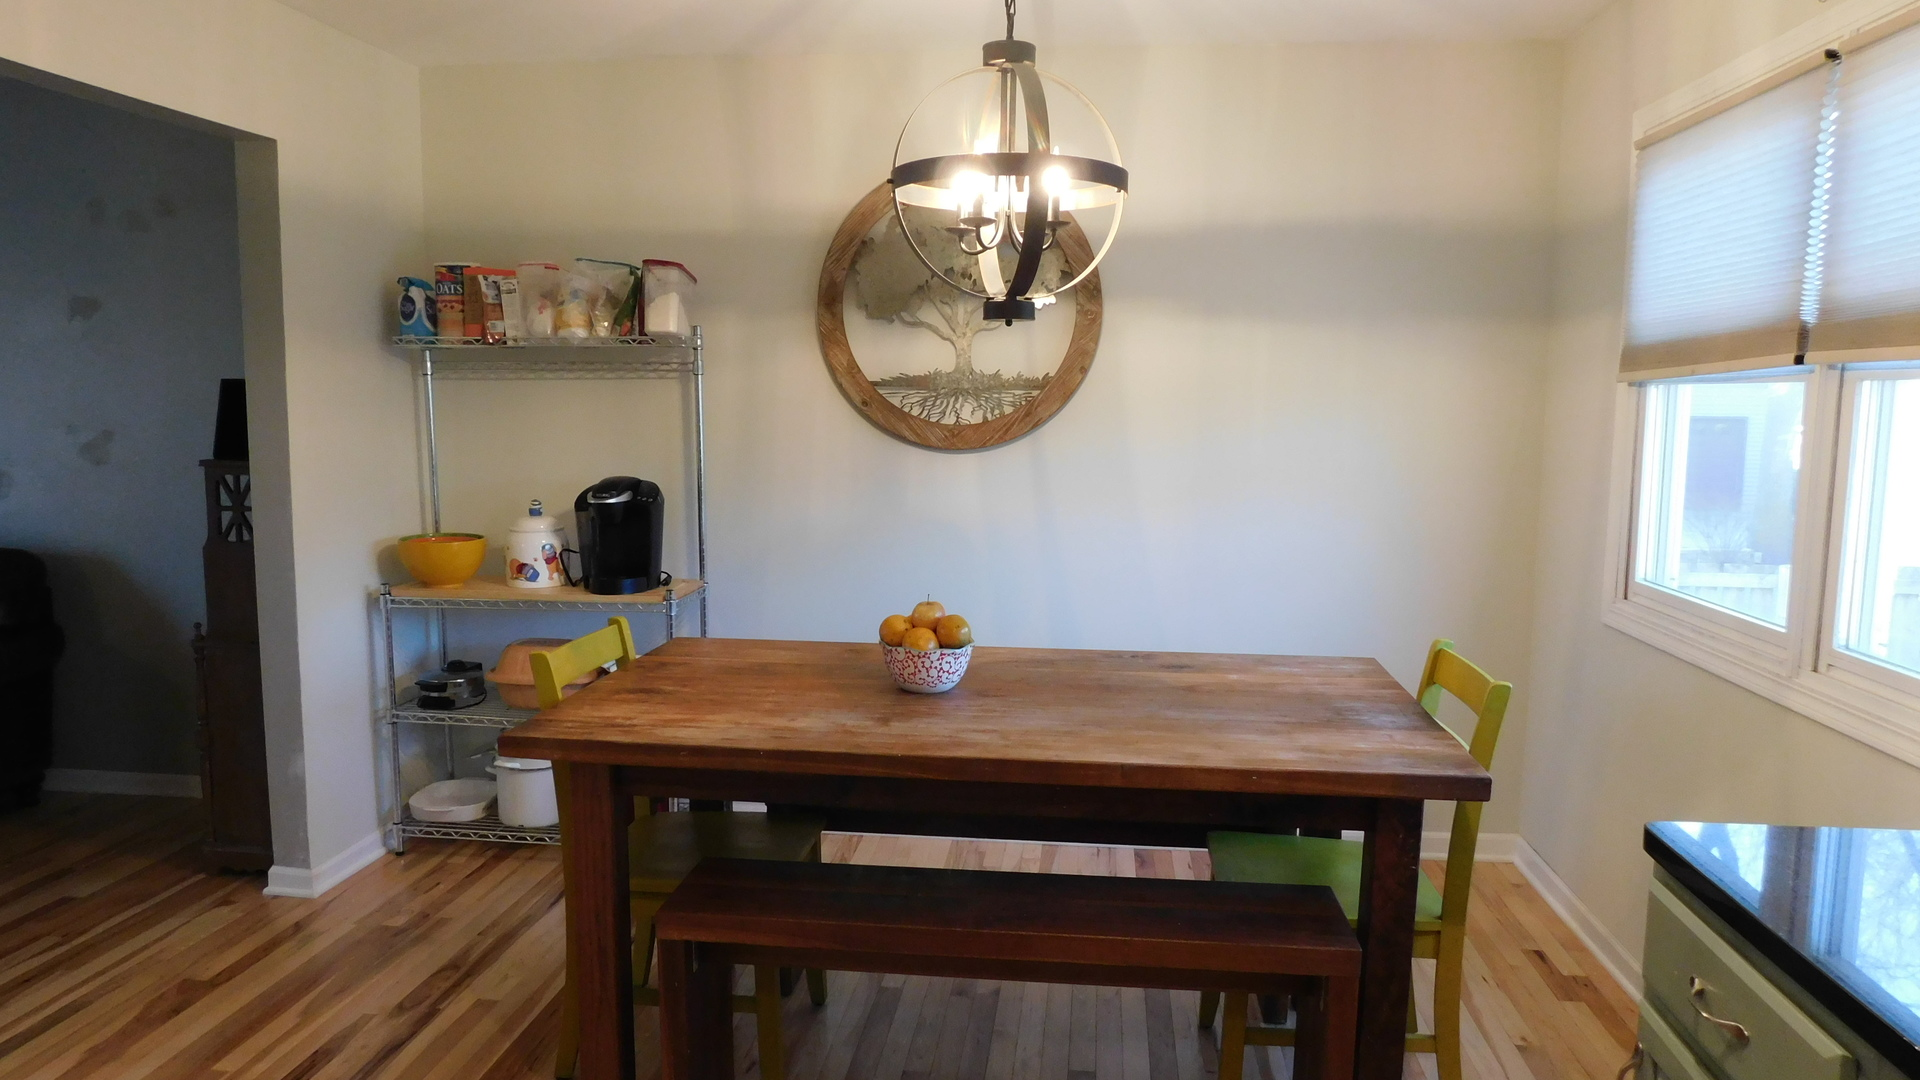 buddhist singles in west hickory Hickory real estate - craigslist cl west virginia (old) favorite this post apr 17 2 bed 1 bath single family home in hickory $44500 2br - 782ft 2.